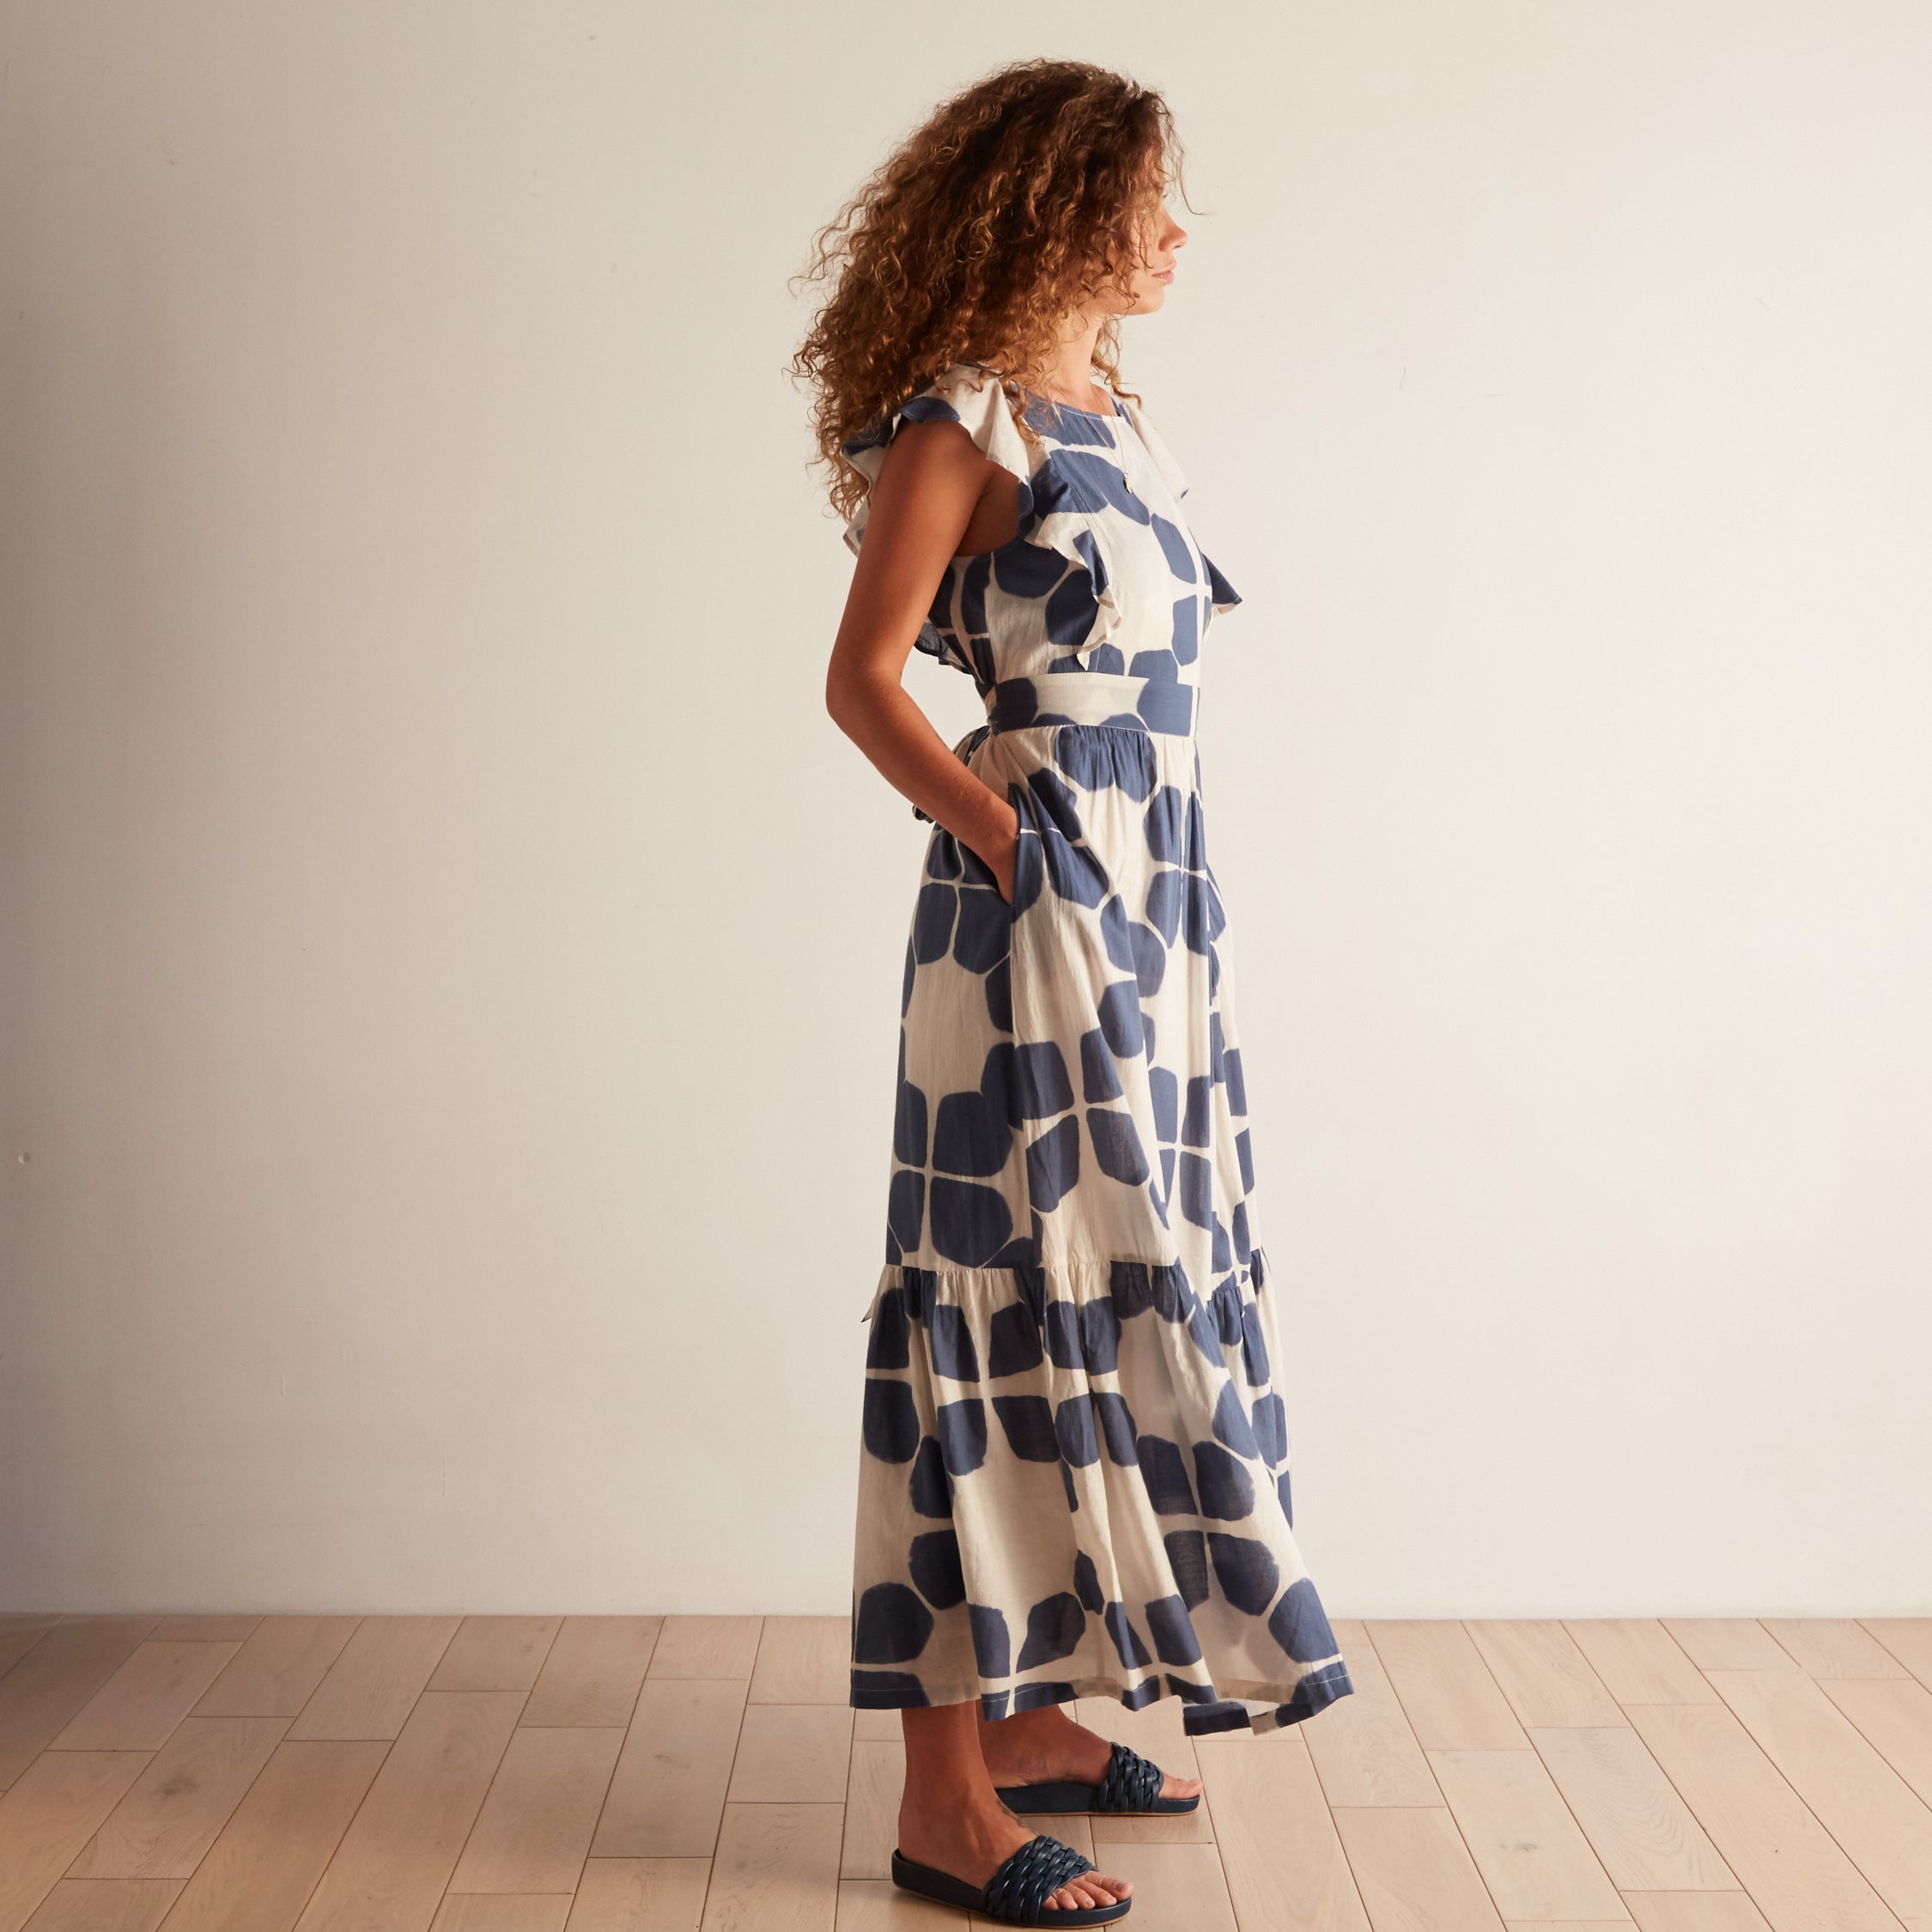 30c417e6f8ea6 The Odells: Seville Maxi Dress | The ODELLS Shop